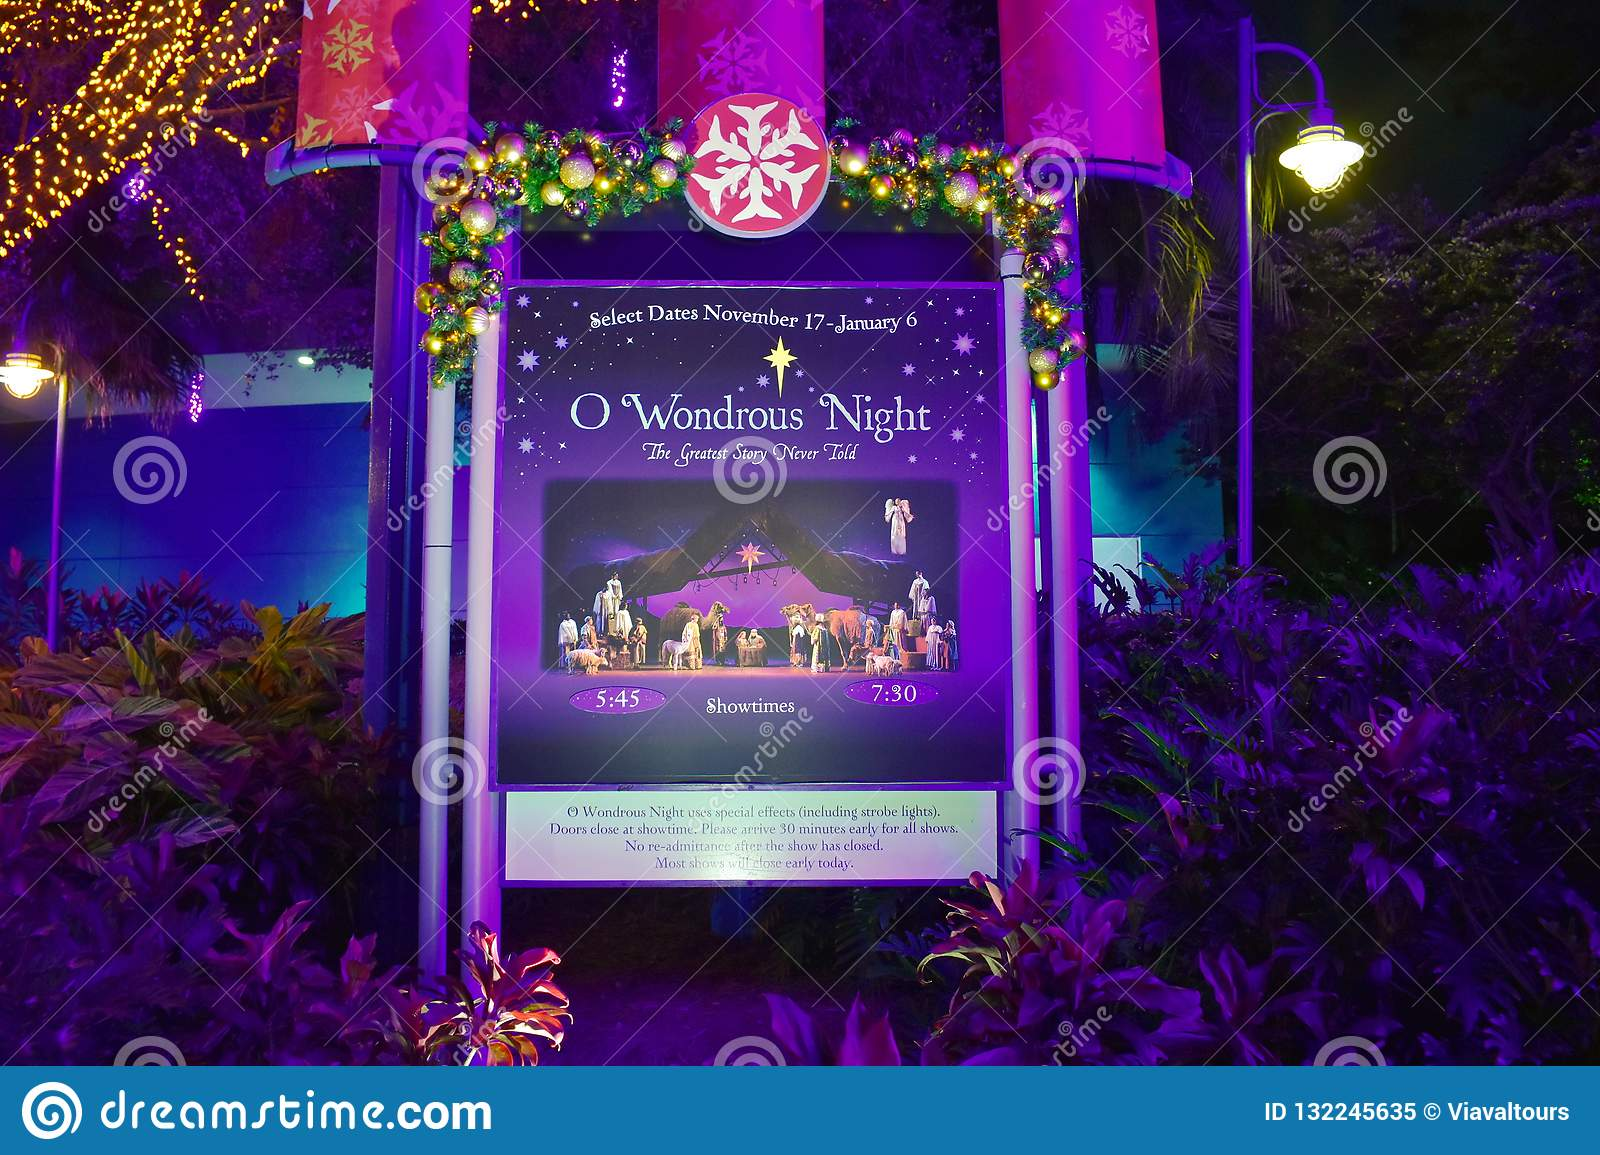 Sign And Drive 45 >> Wondrous Night Show Sign In International Drive Area